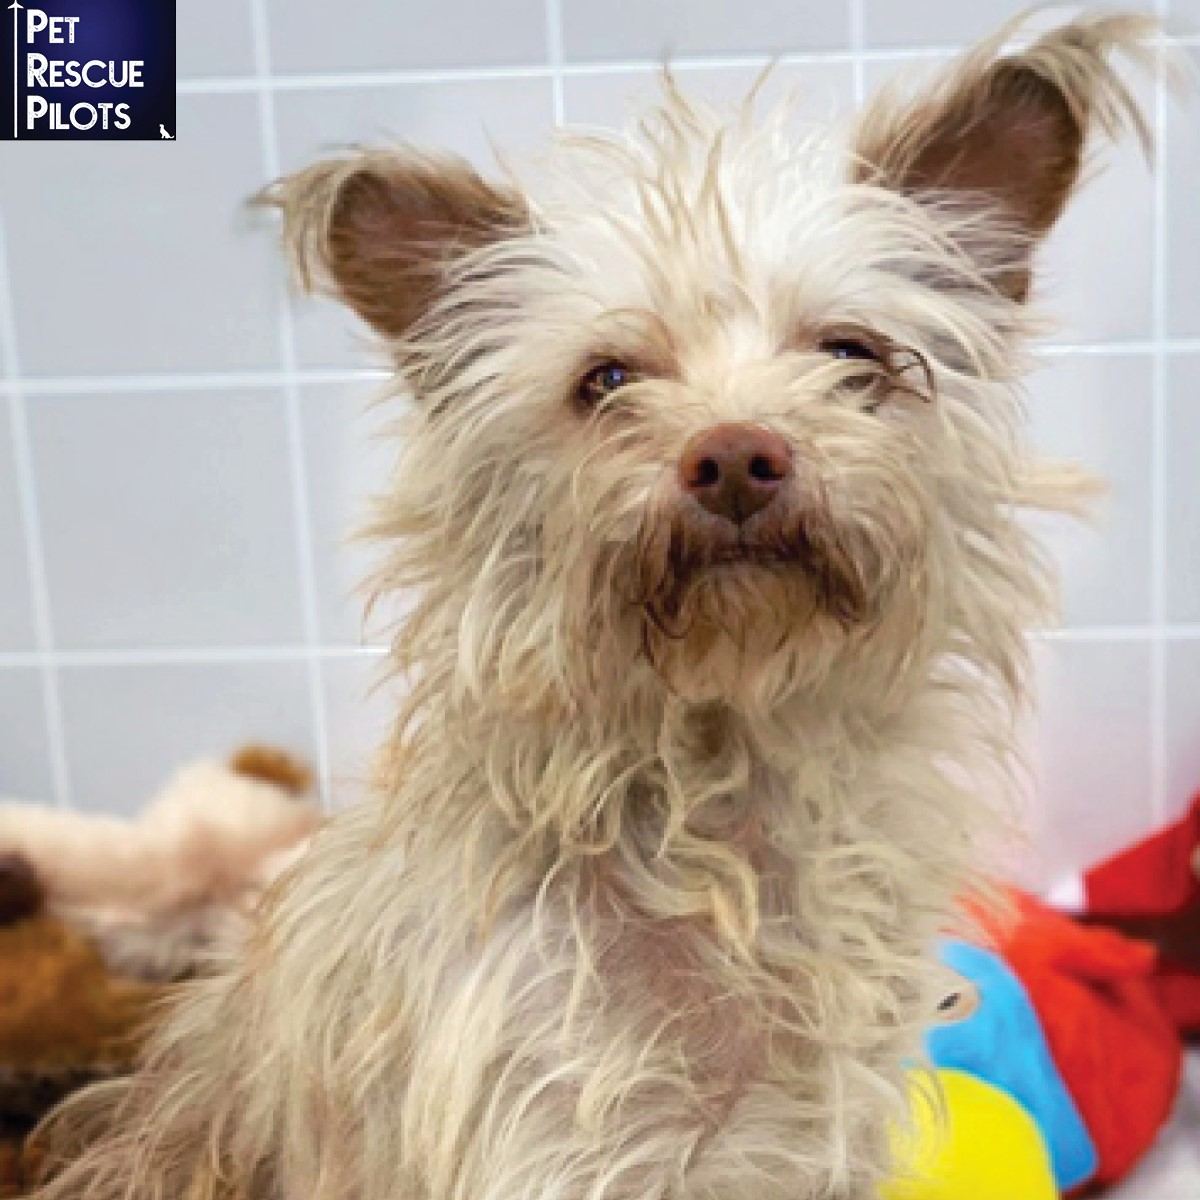 Molly, a 1 year old female Chinese Crested Chi, is very sweet, gentle, and mellow. She loves all people and dogs.